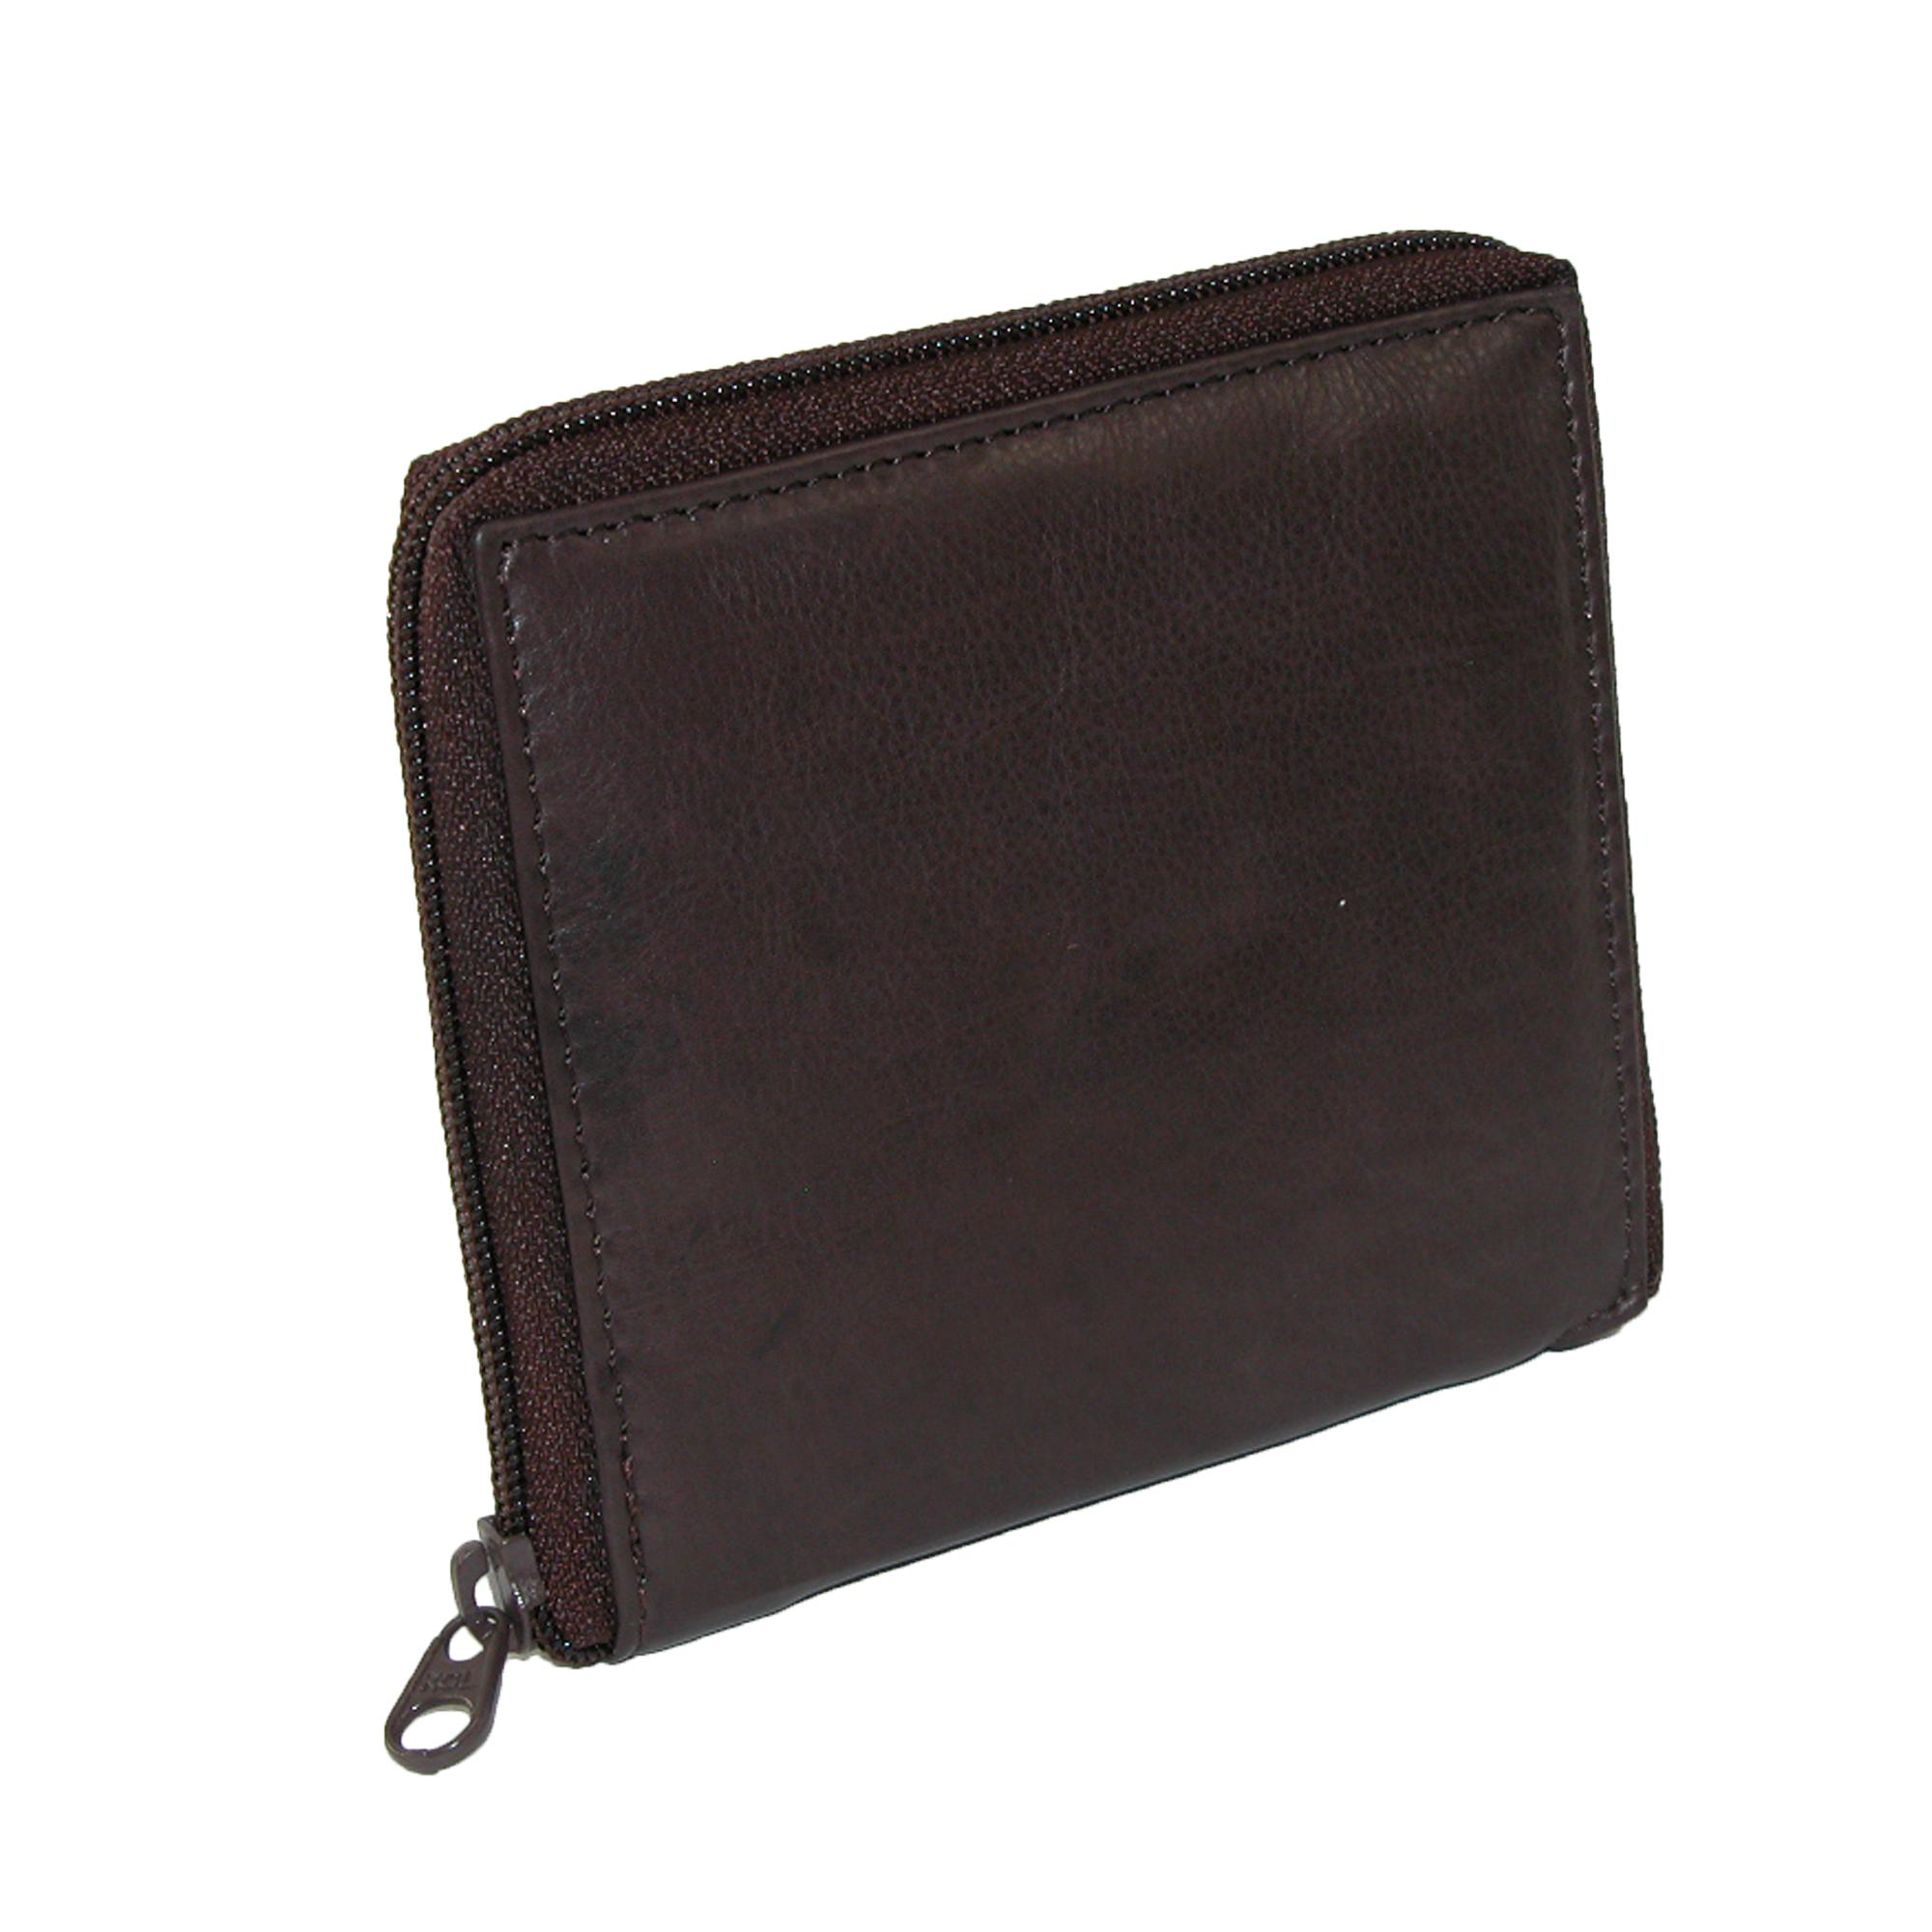 Paul_&_Taylor_Mens_Leather_Zip_Around_Hipster_Credit_Card_Wallet_